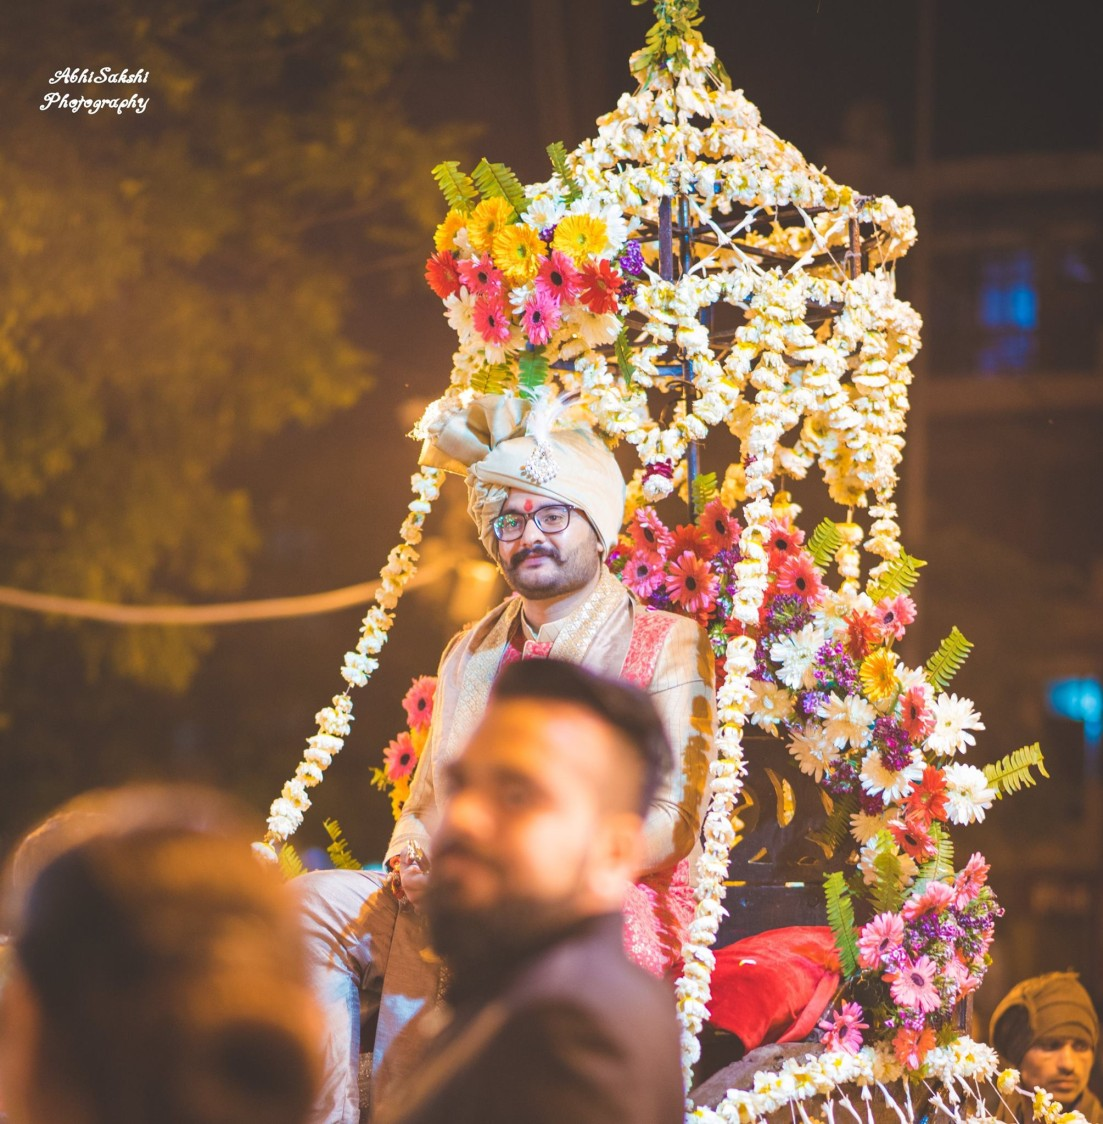 Candid Shot of Groom's Entry by AbhiSakshi Photography Wedding-photography | Weddings Photos & Ideas